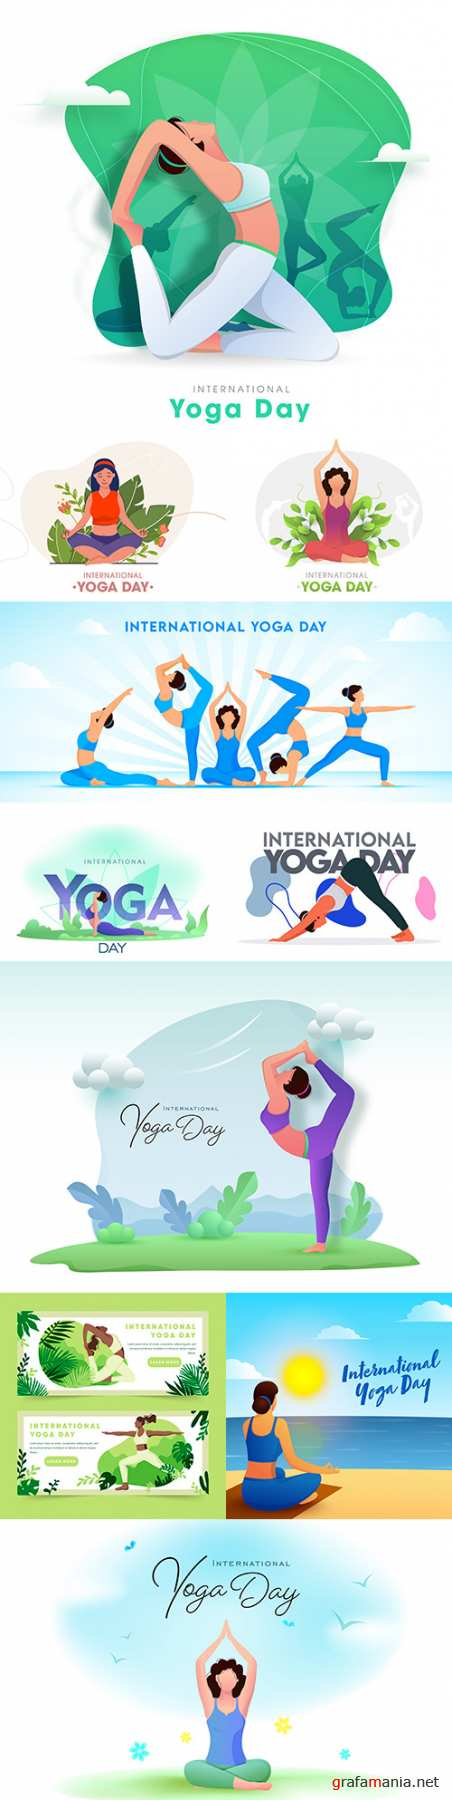 Yoga International day and meditation design illustration 6